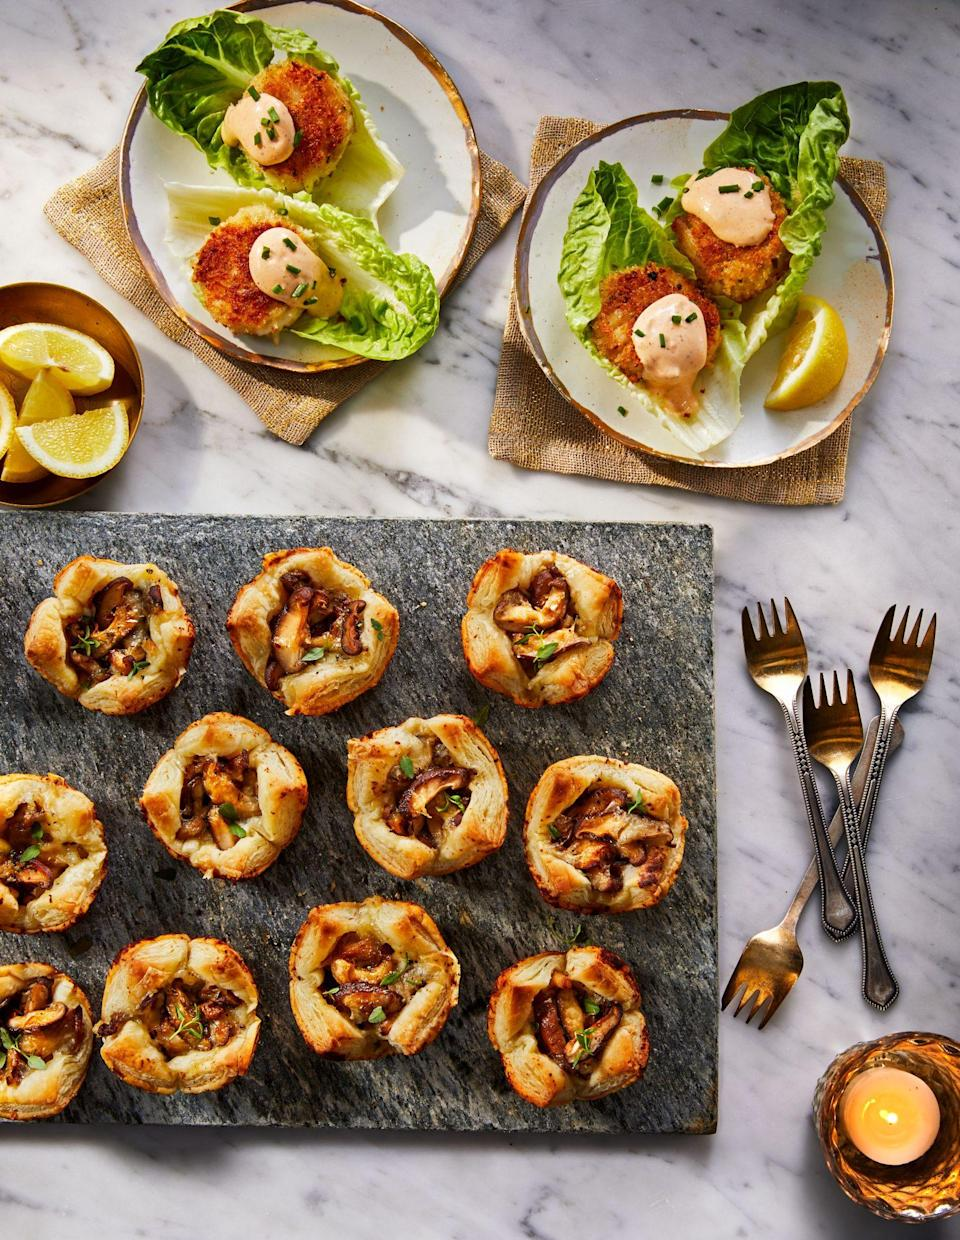 """<p><strong>Recipe:</strong> <a href=""""https://www.southernliving.com/recipes/mini-crab-cakes-cajun-sauce"""" rel=""""nofollow noopener"""" target=""""_blank"""" data-ylk=""""slk:Mini Crab Cakes with Cajun Sauce"""" class=""""link rapid-noclick-resp"""">Mini Crab Cakes with Cajun Sauce</a></p> <p>Although these Mini Crab Cakes do take a bit of time and attention, they can be made up to five days in advance. We're all about stress-free brunch preparations. </p>"""